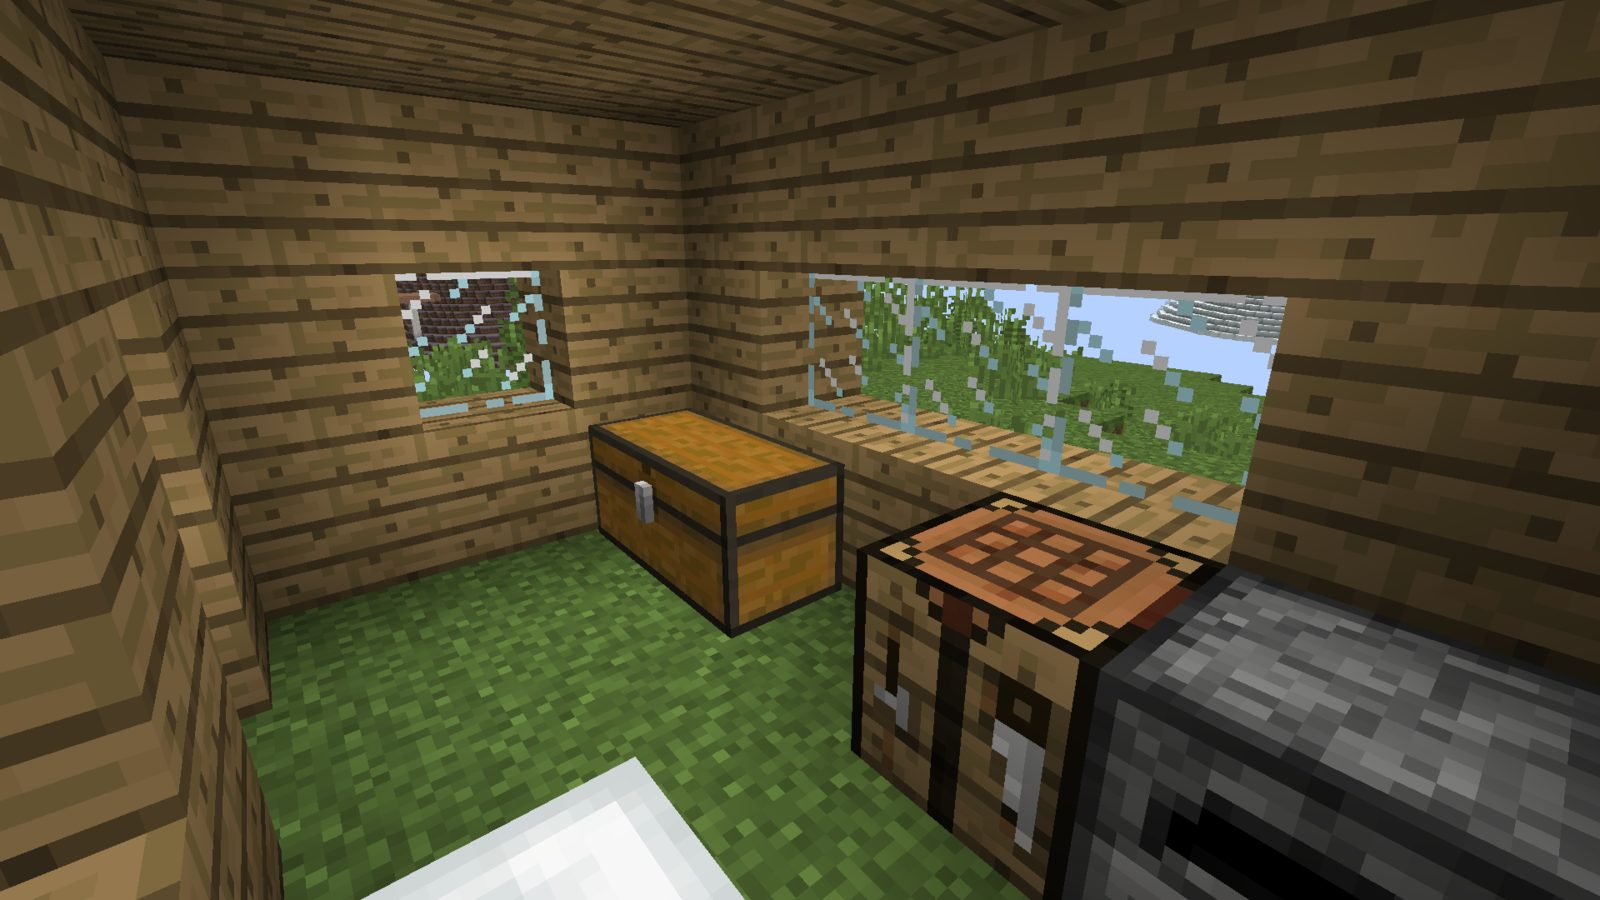 How To Install Minecraft Skyblock For Mac - fasrinabox